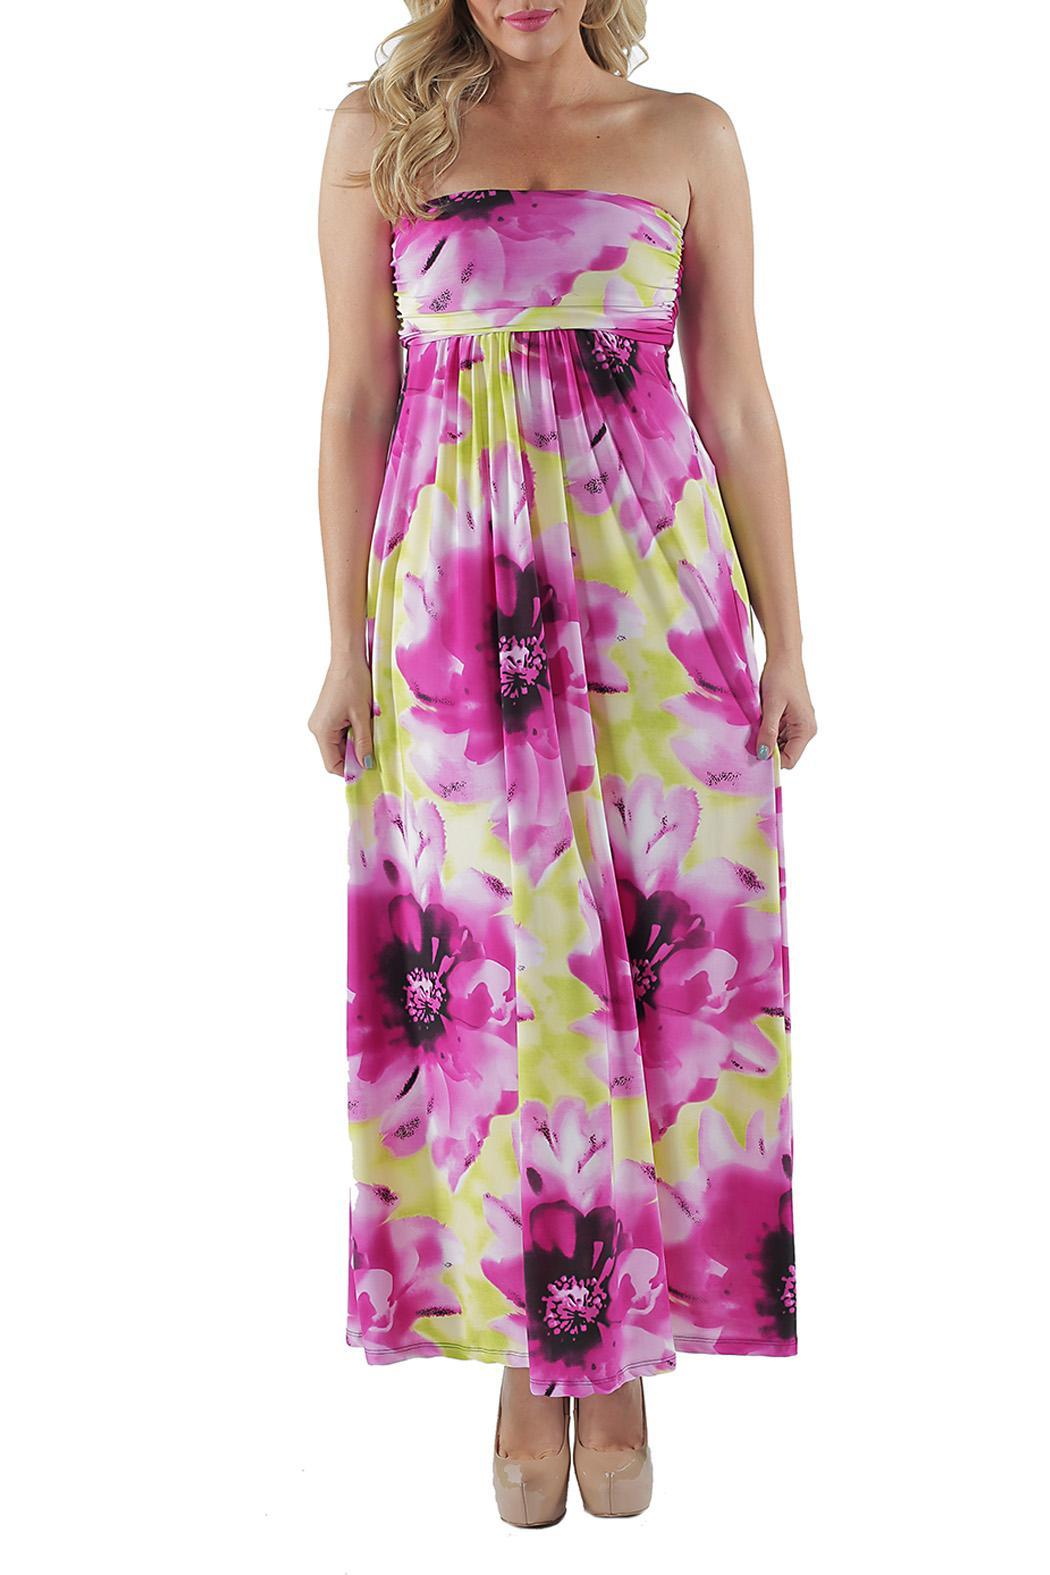 24/7 Comfort Apparel Plus Size Tube Maxi Dress from California by ...